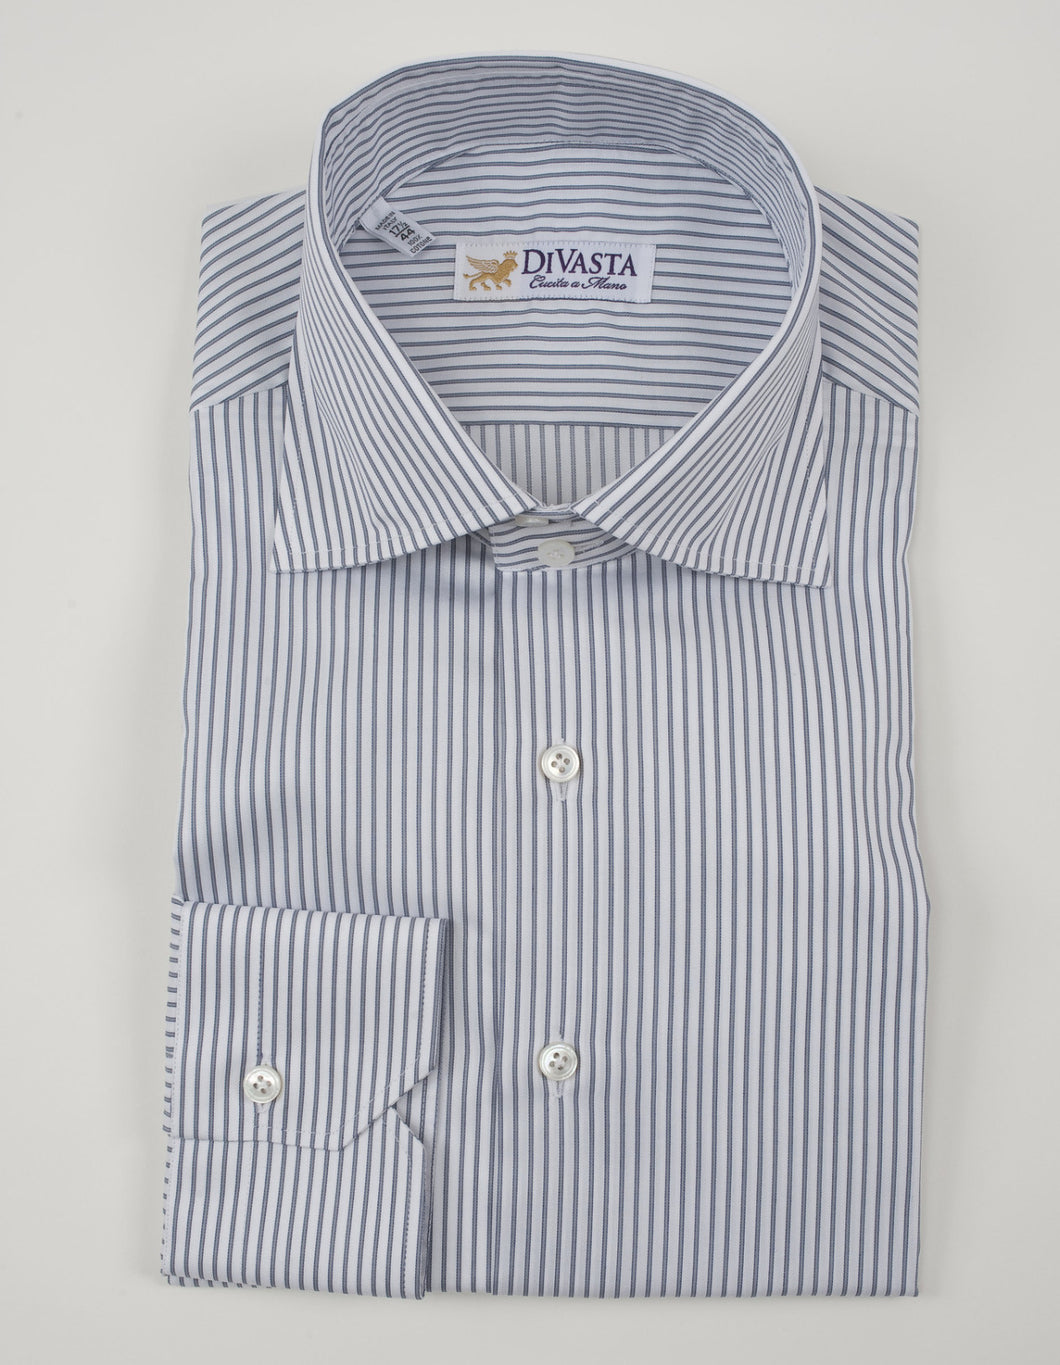 Men's Dress Shirt-M2 615890